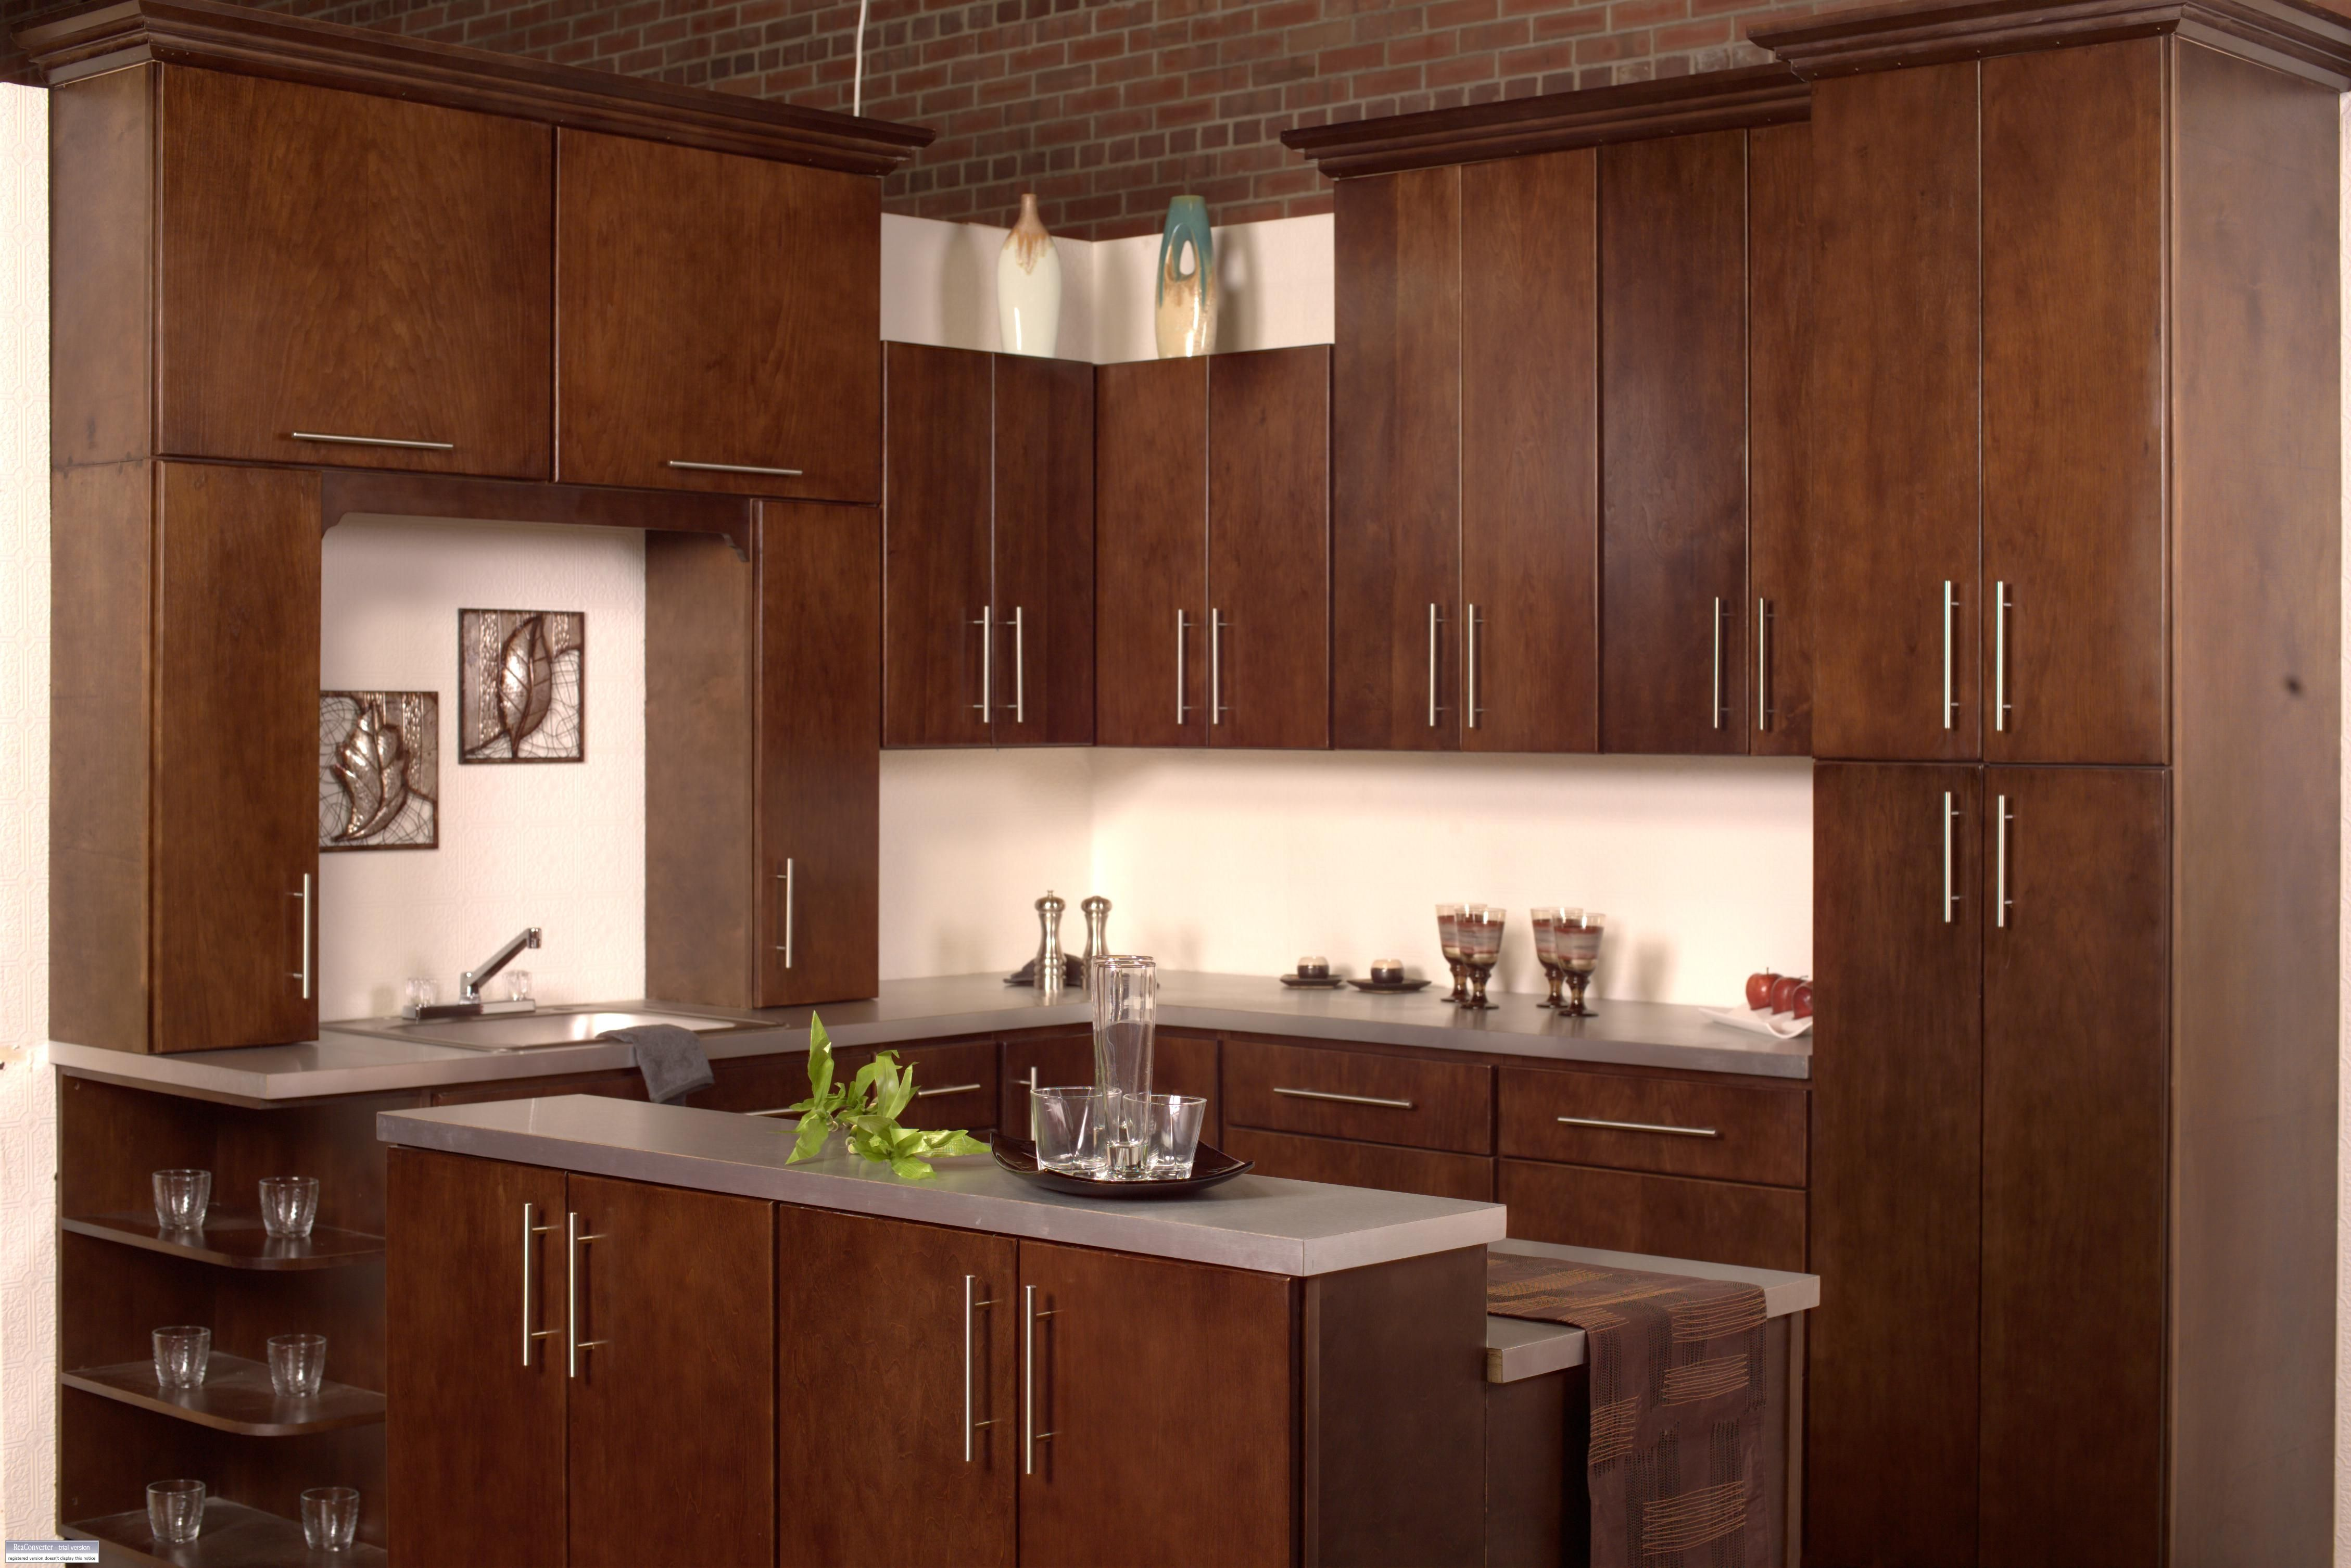 slab kitchen cabinets small counter lamps cabinet doors bali rta my